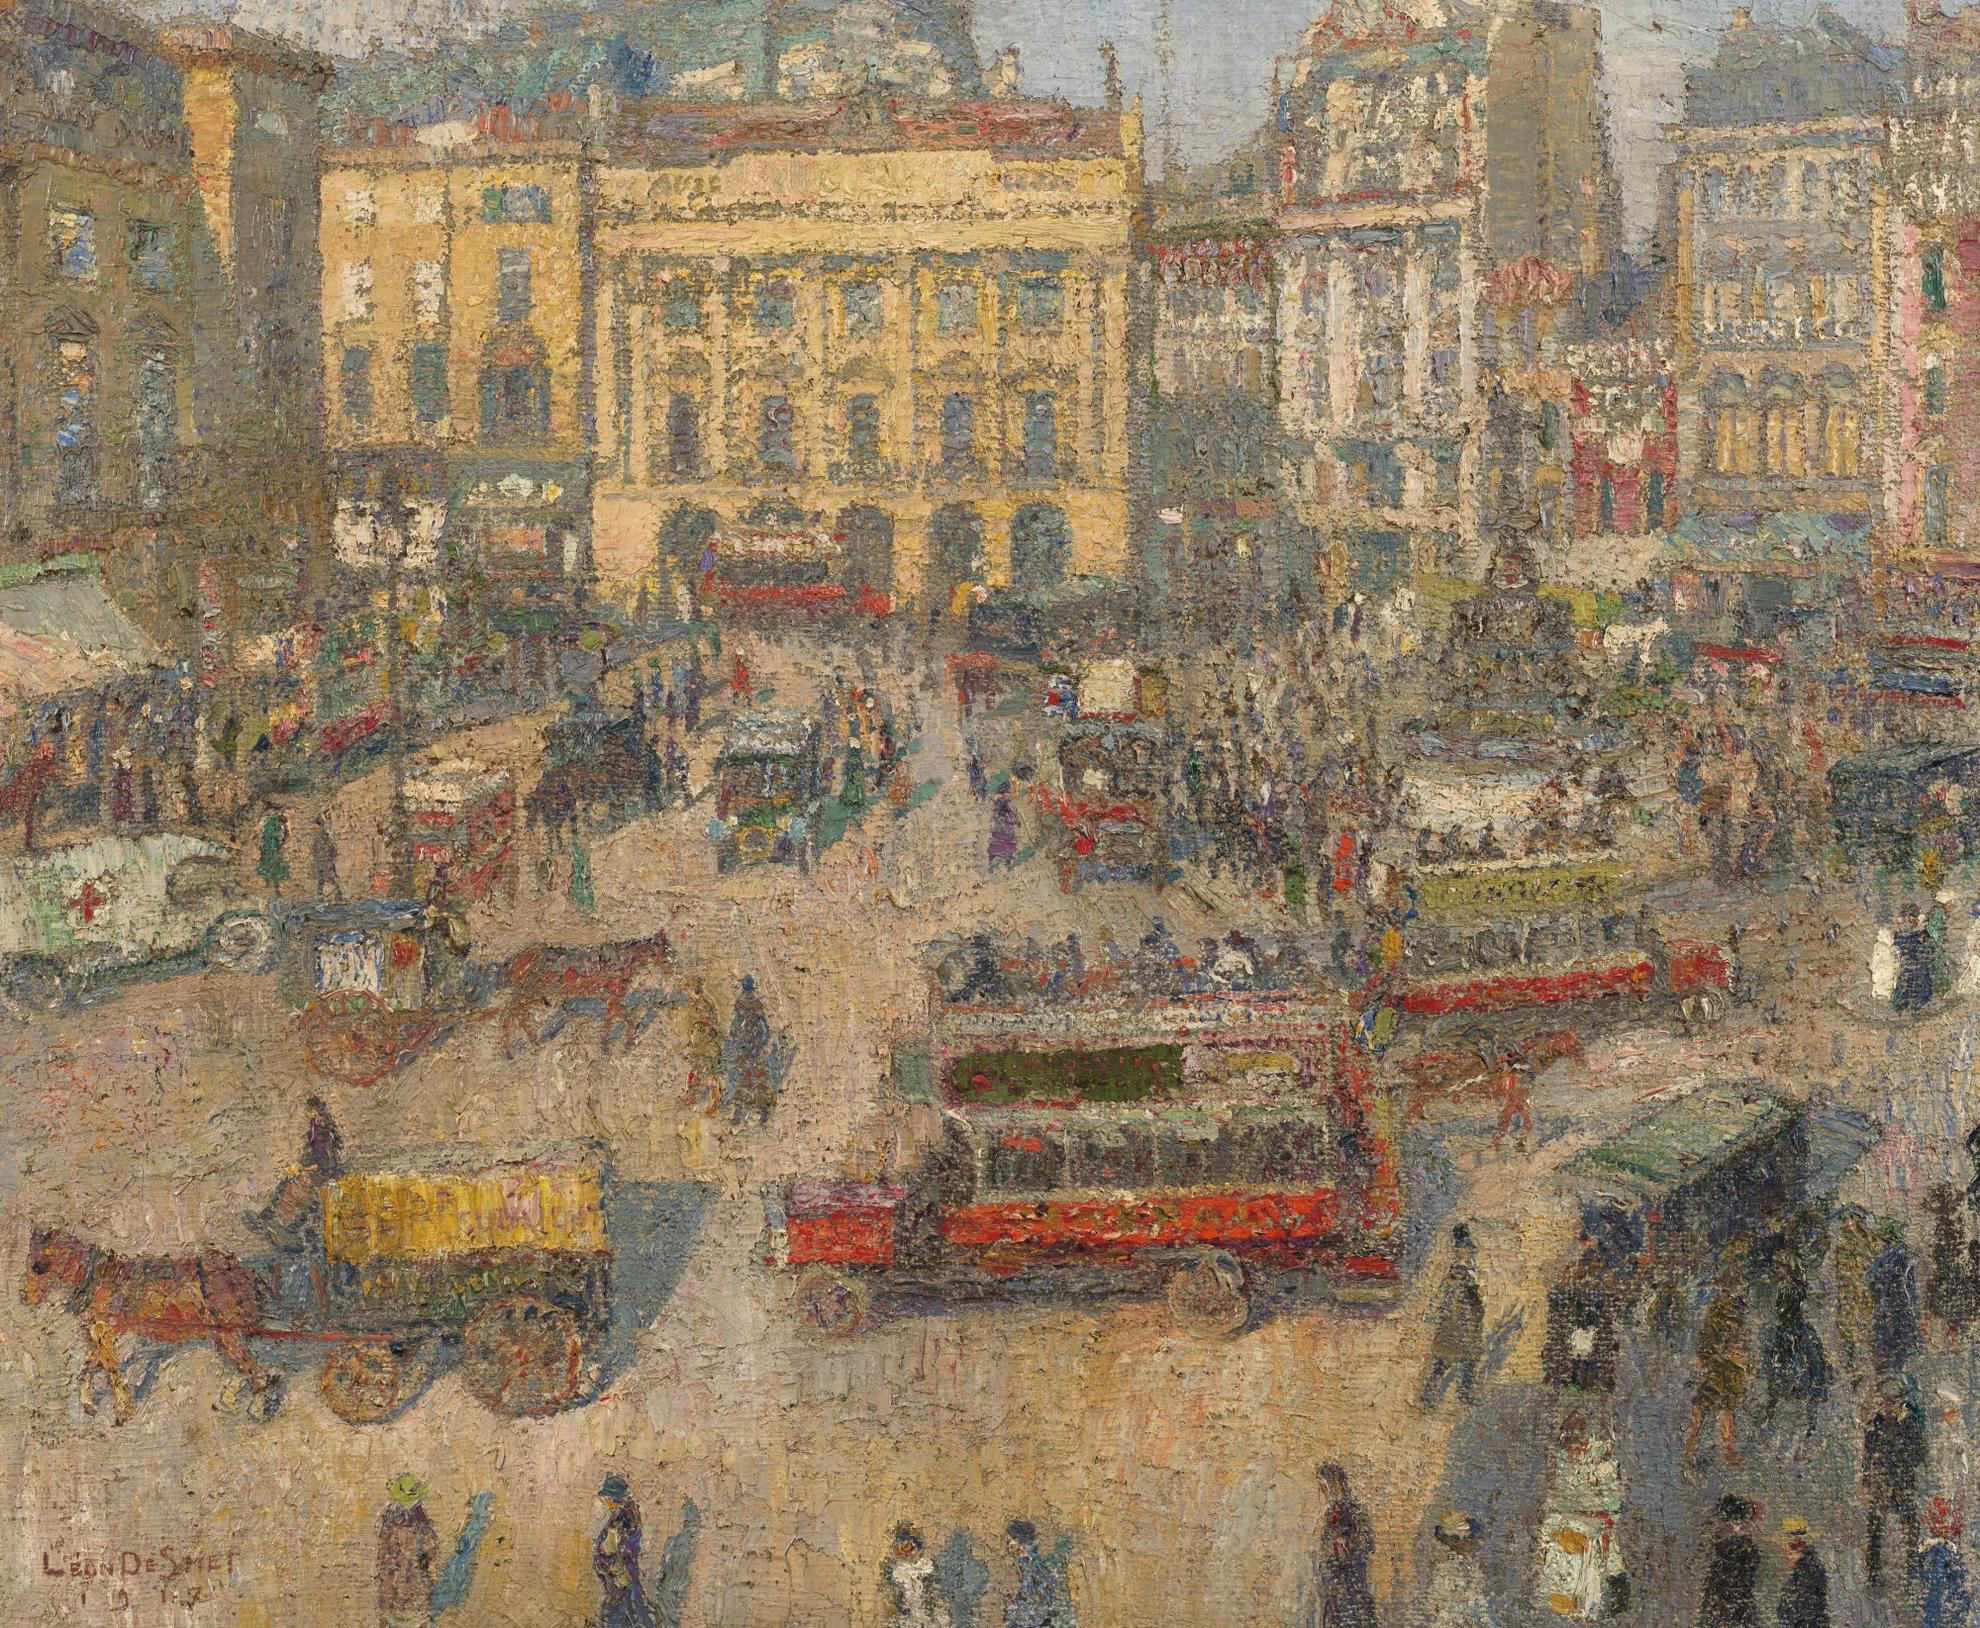 Leon De Smet-Piccadilly Circus, London-1917